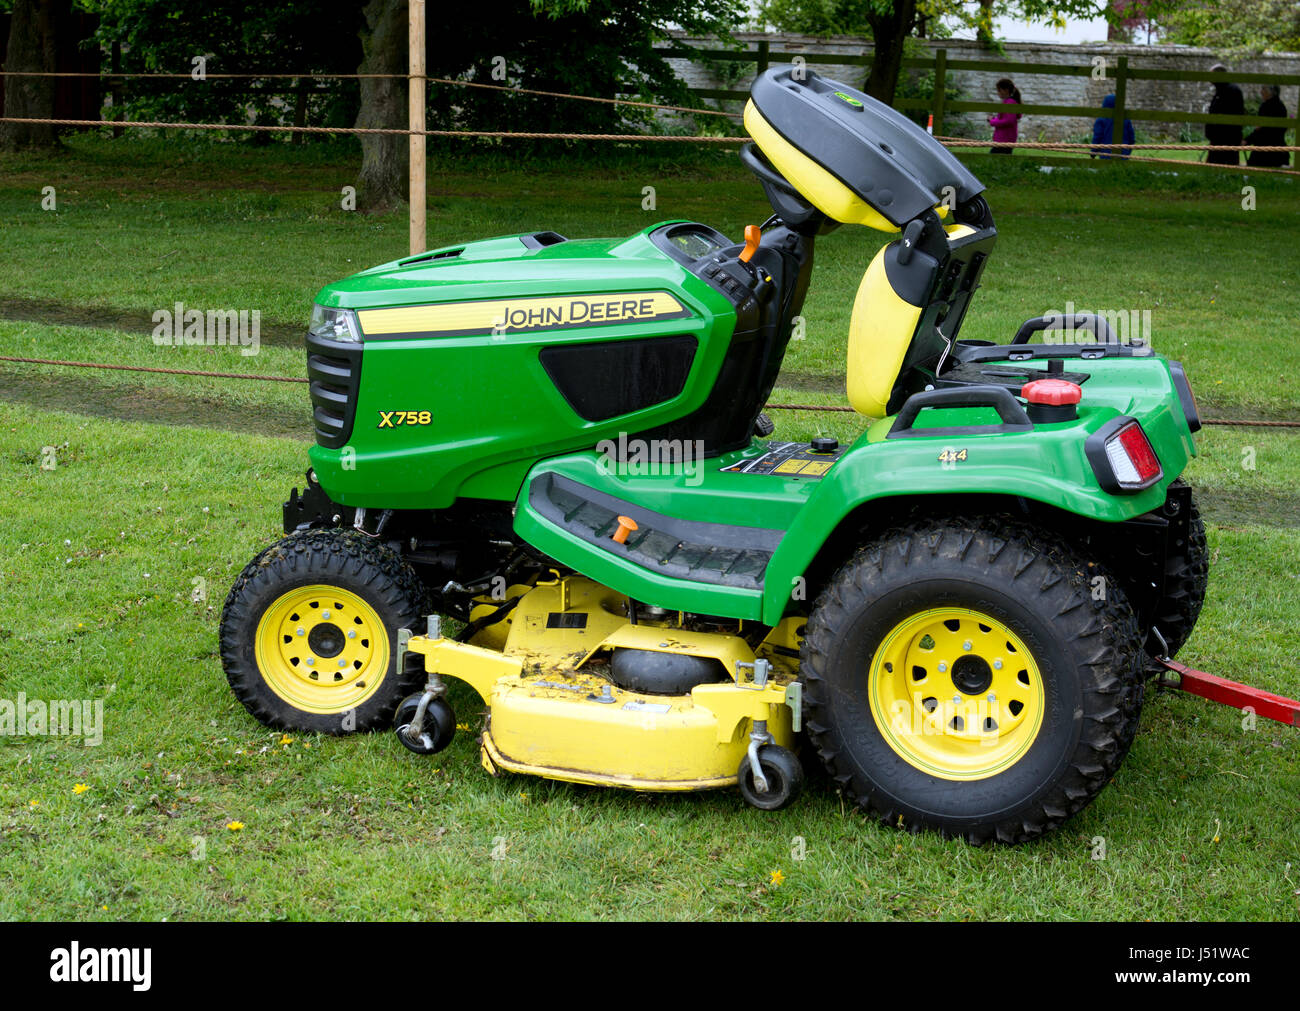 A John Deere ride-on mower - Stock Image